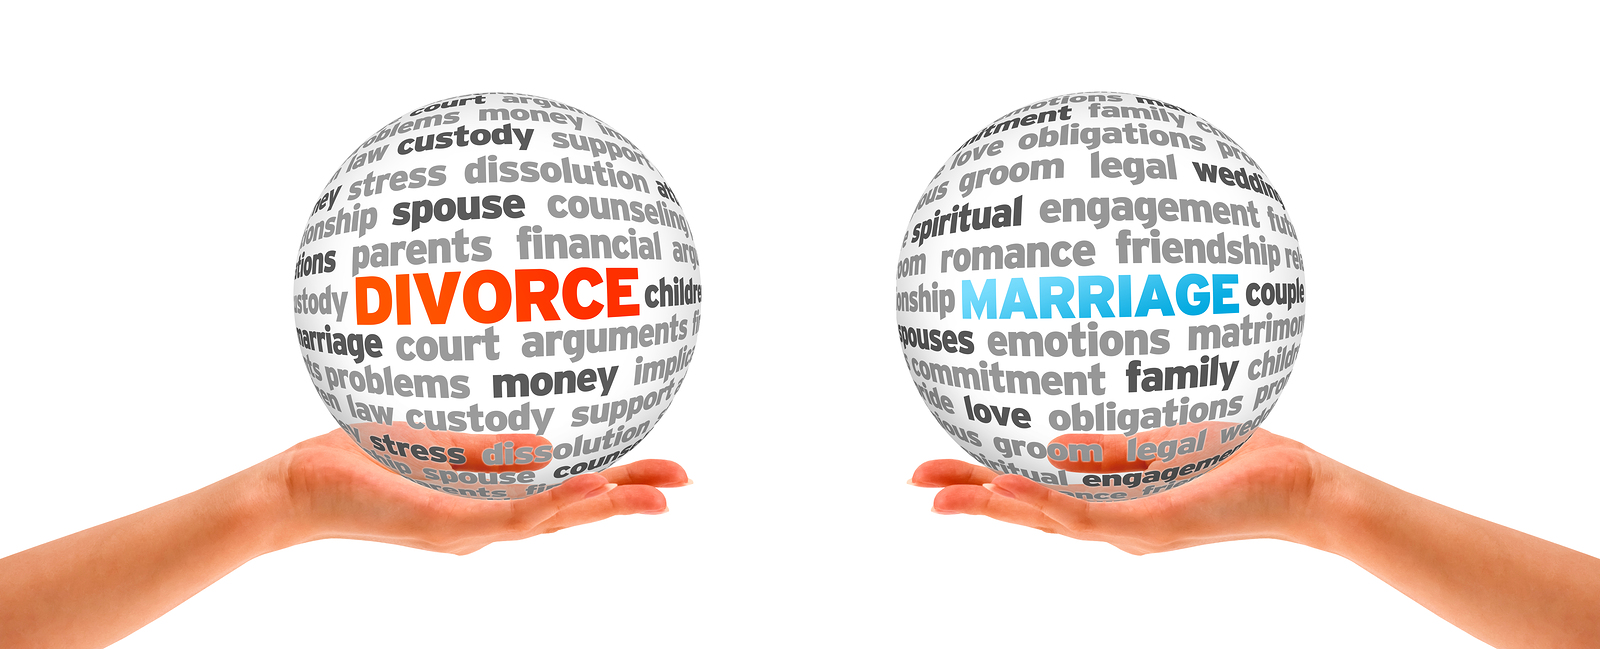 Marriage counseling in St. George, Utah